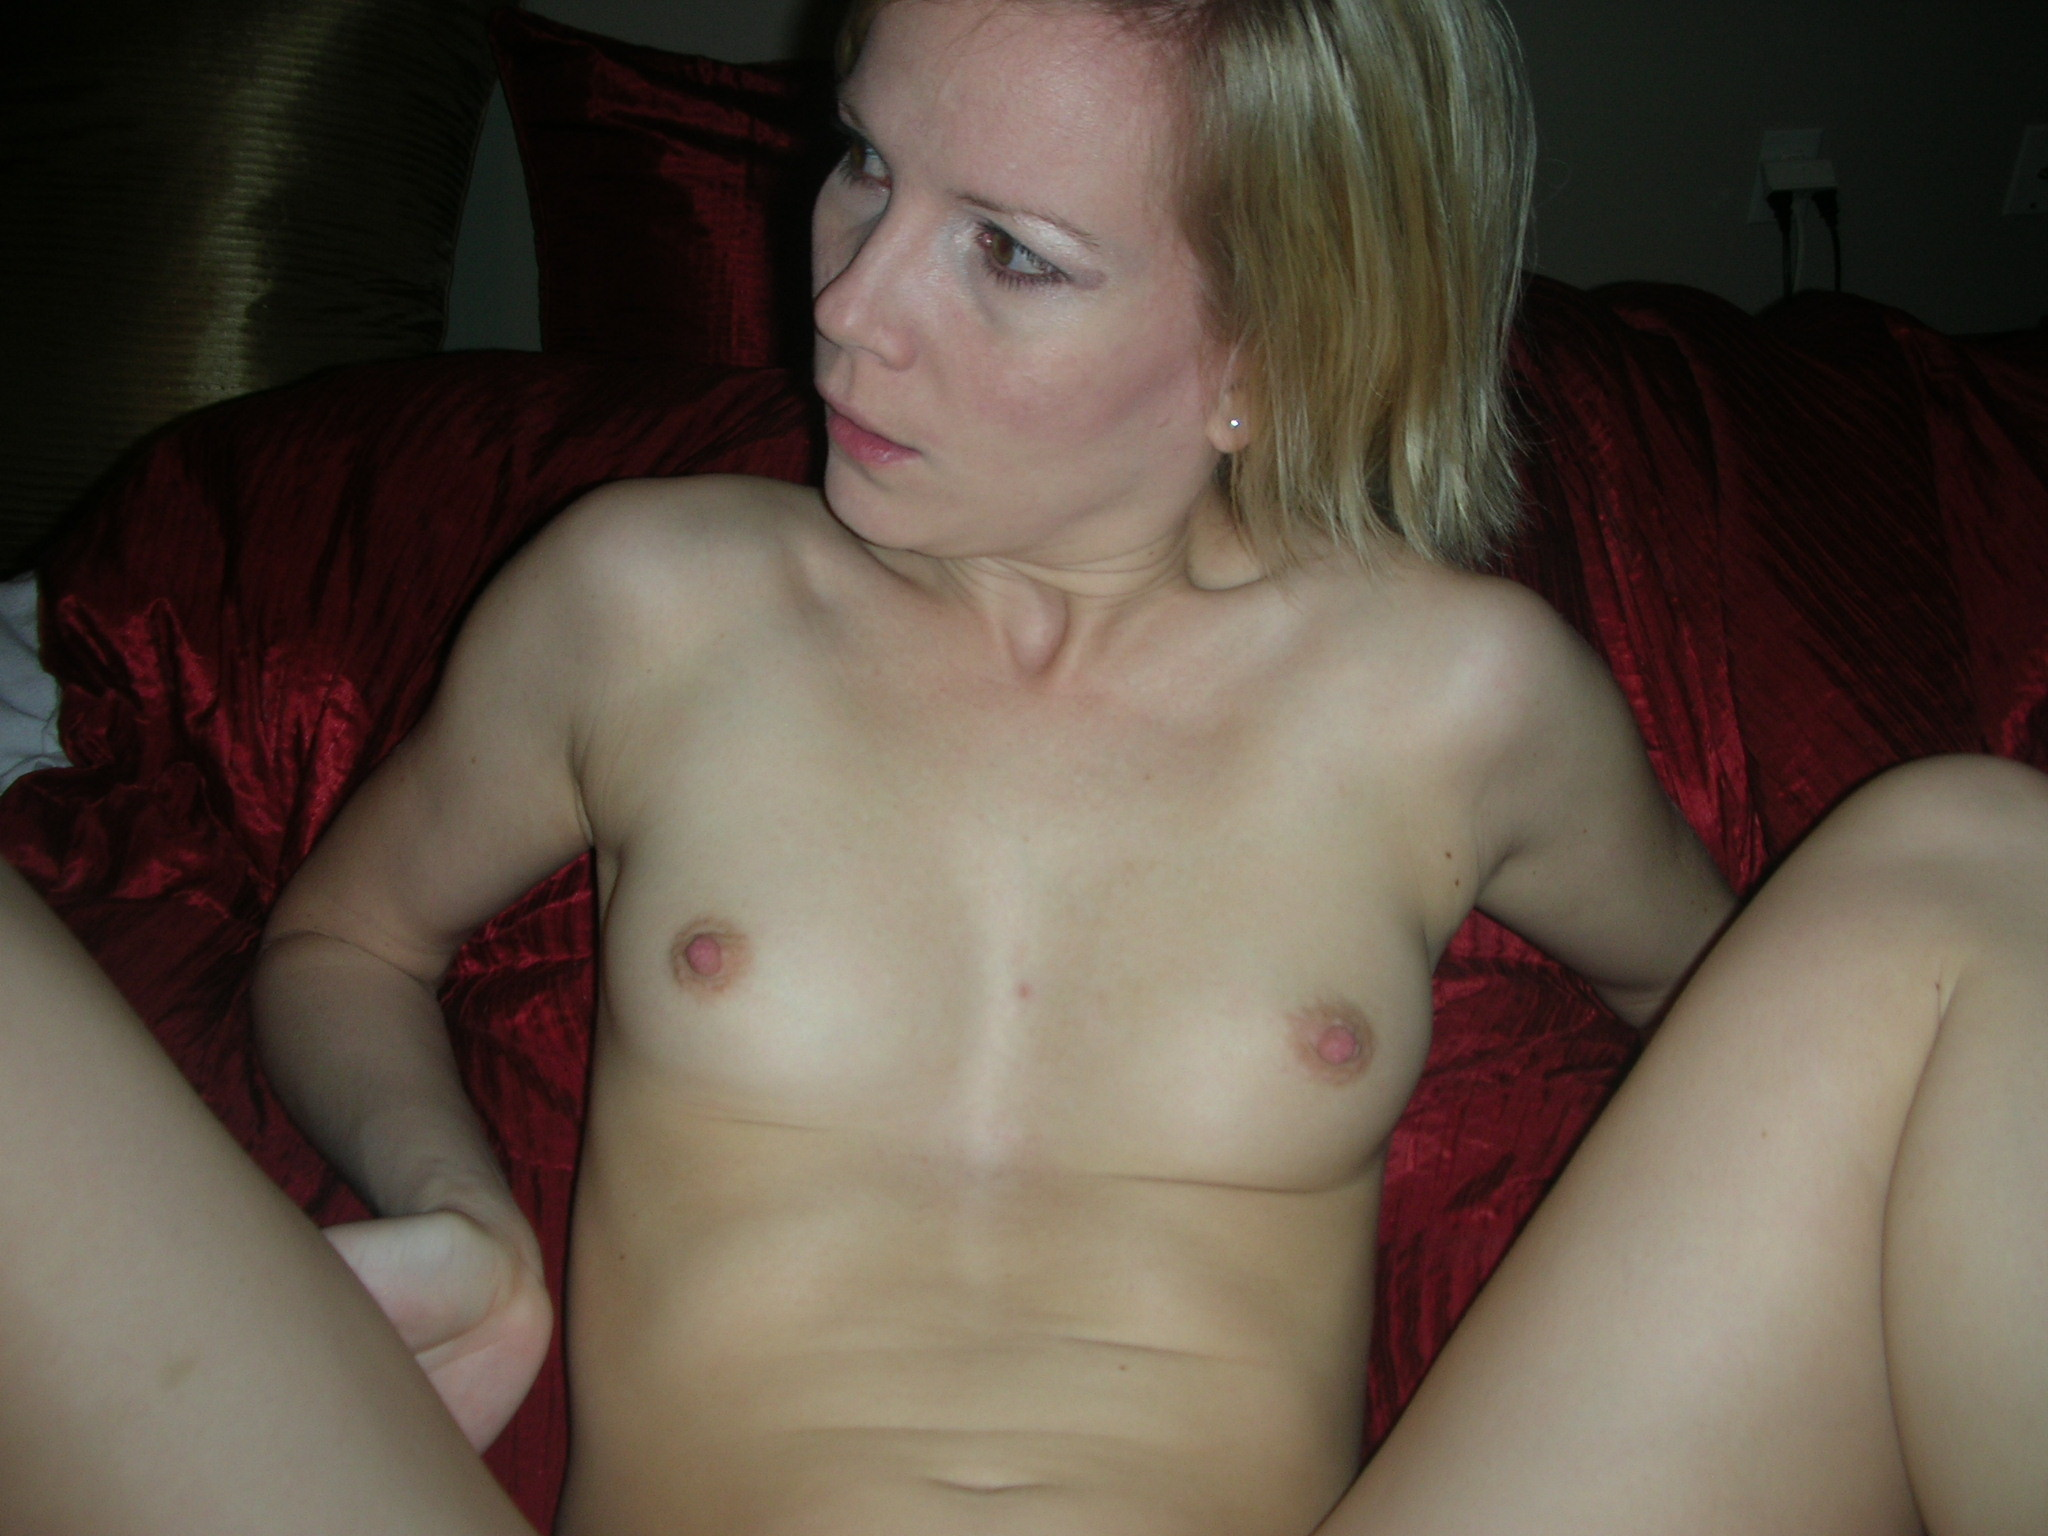 Variant, amateur blonde wife nude sorry